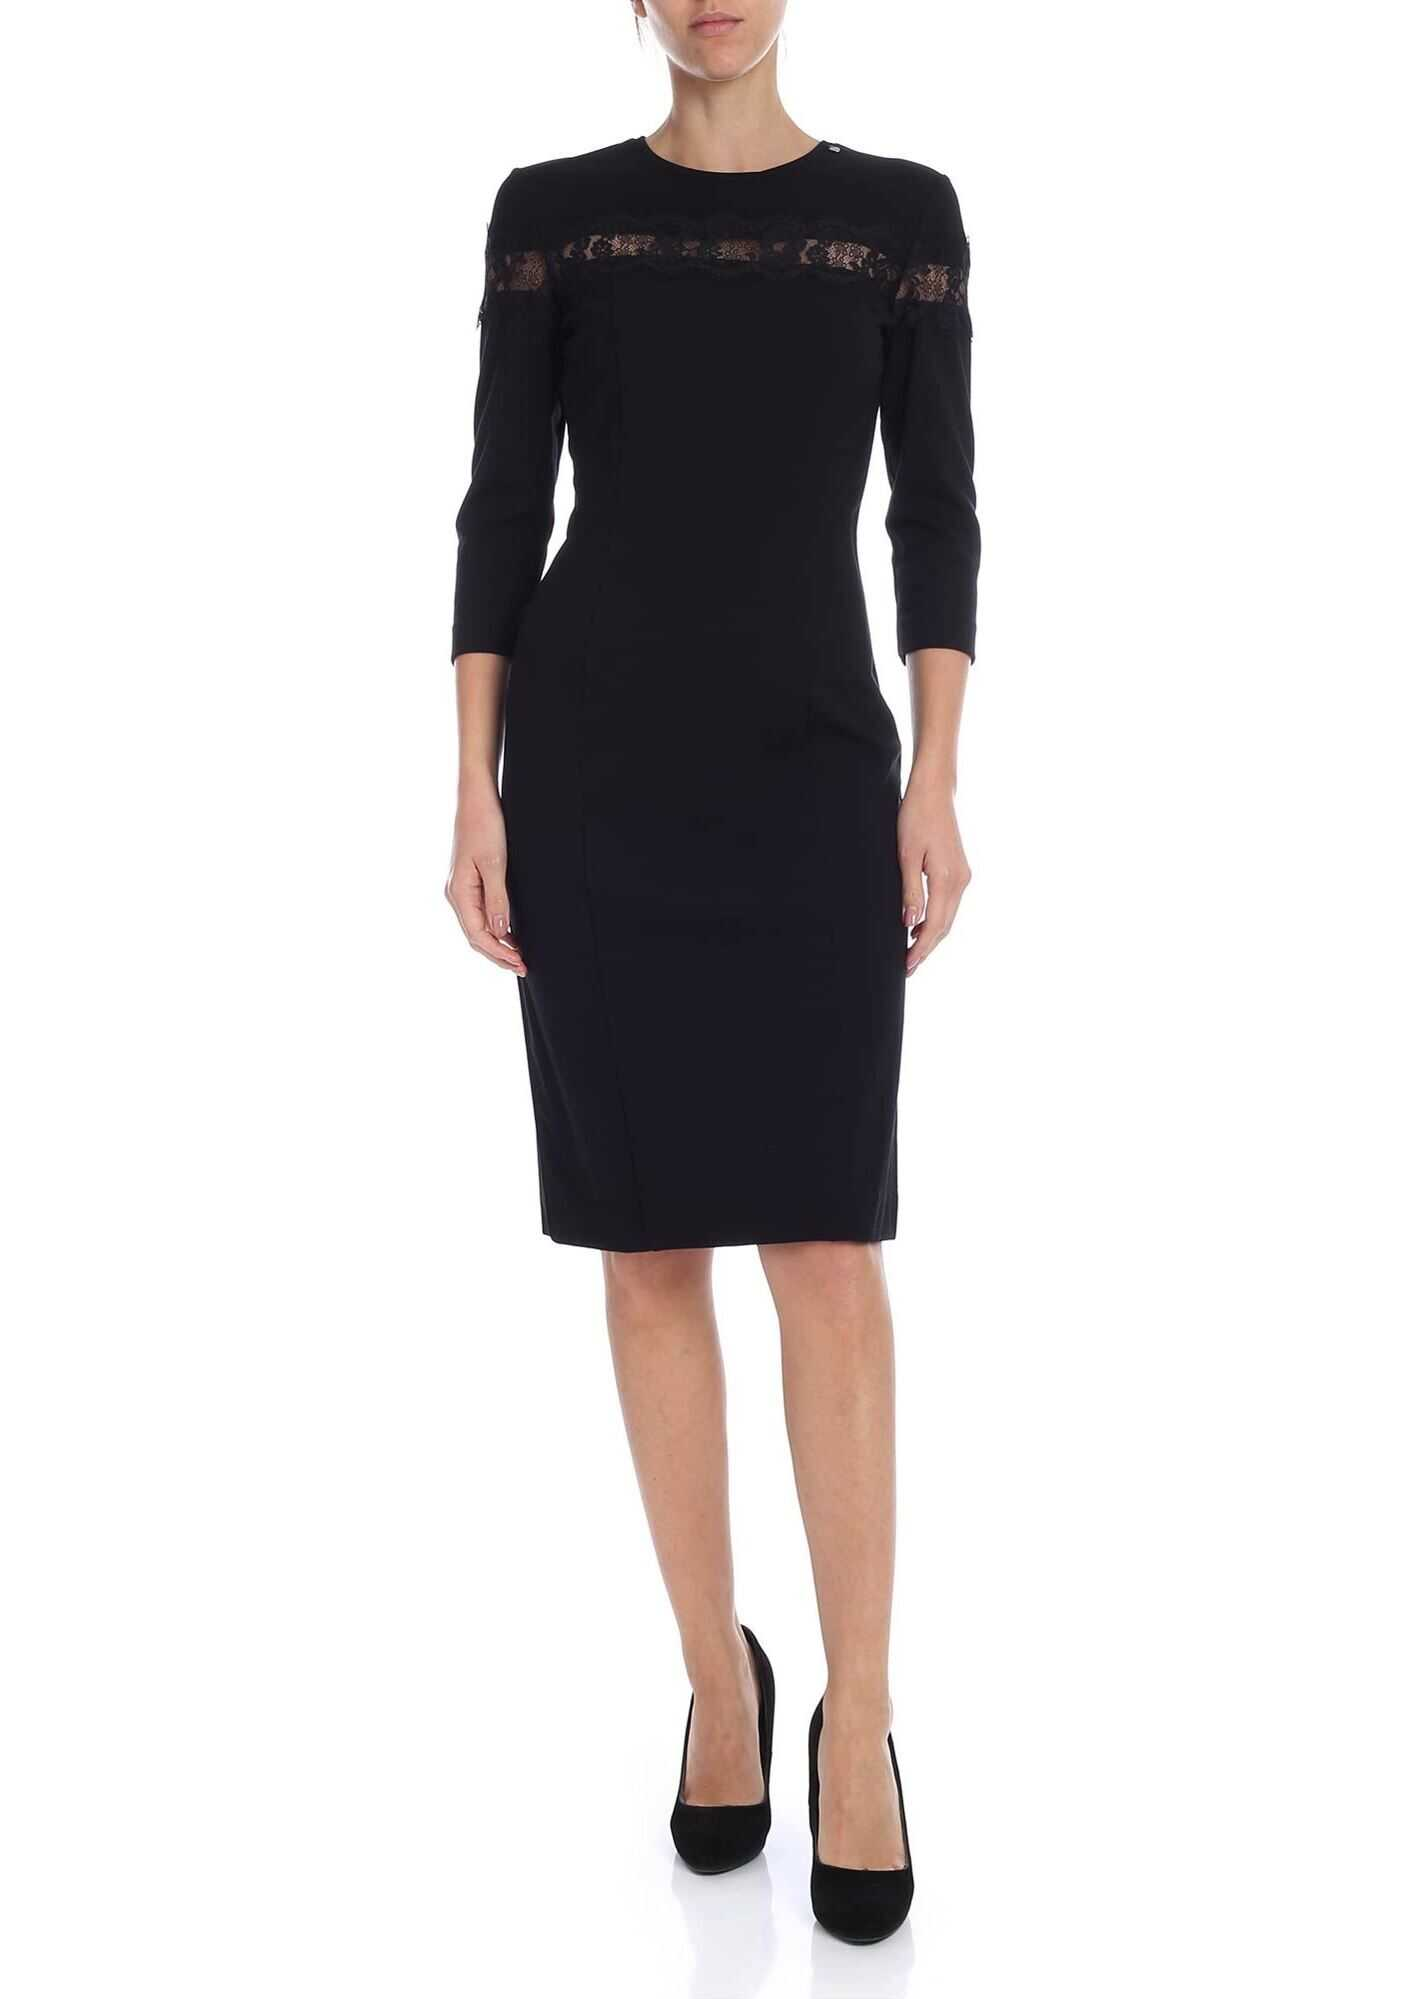 Black Crew Neck Pencil Dress With Lace thumbnail